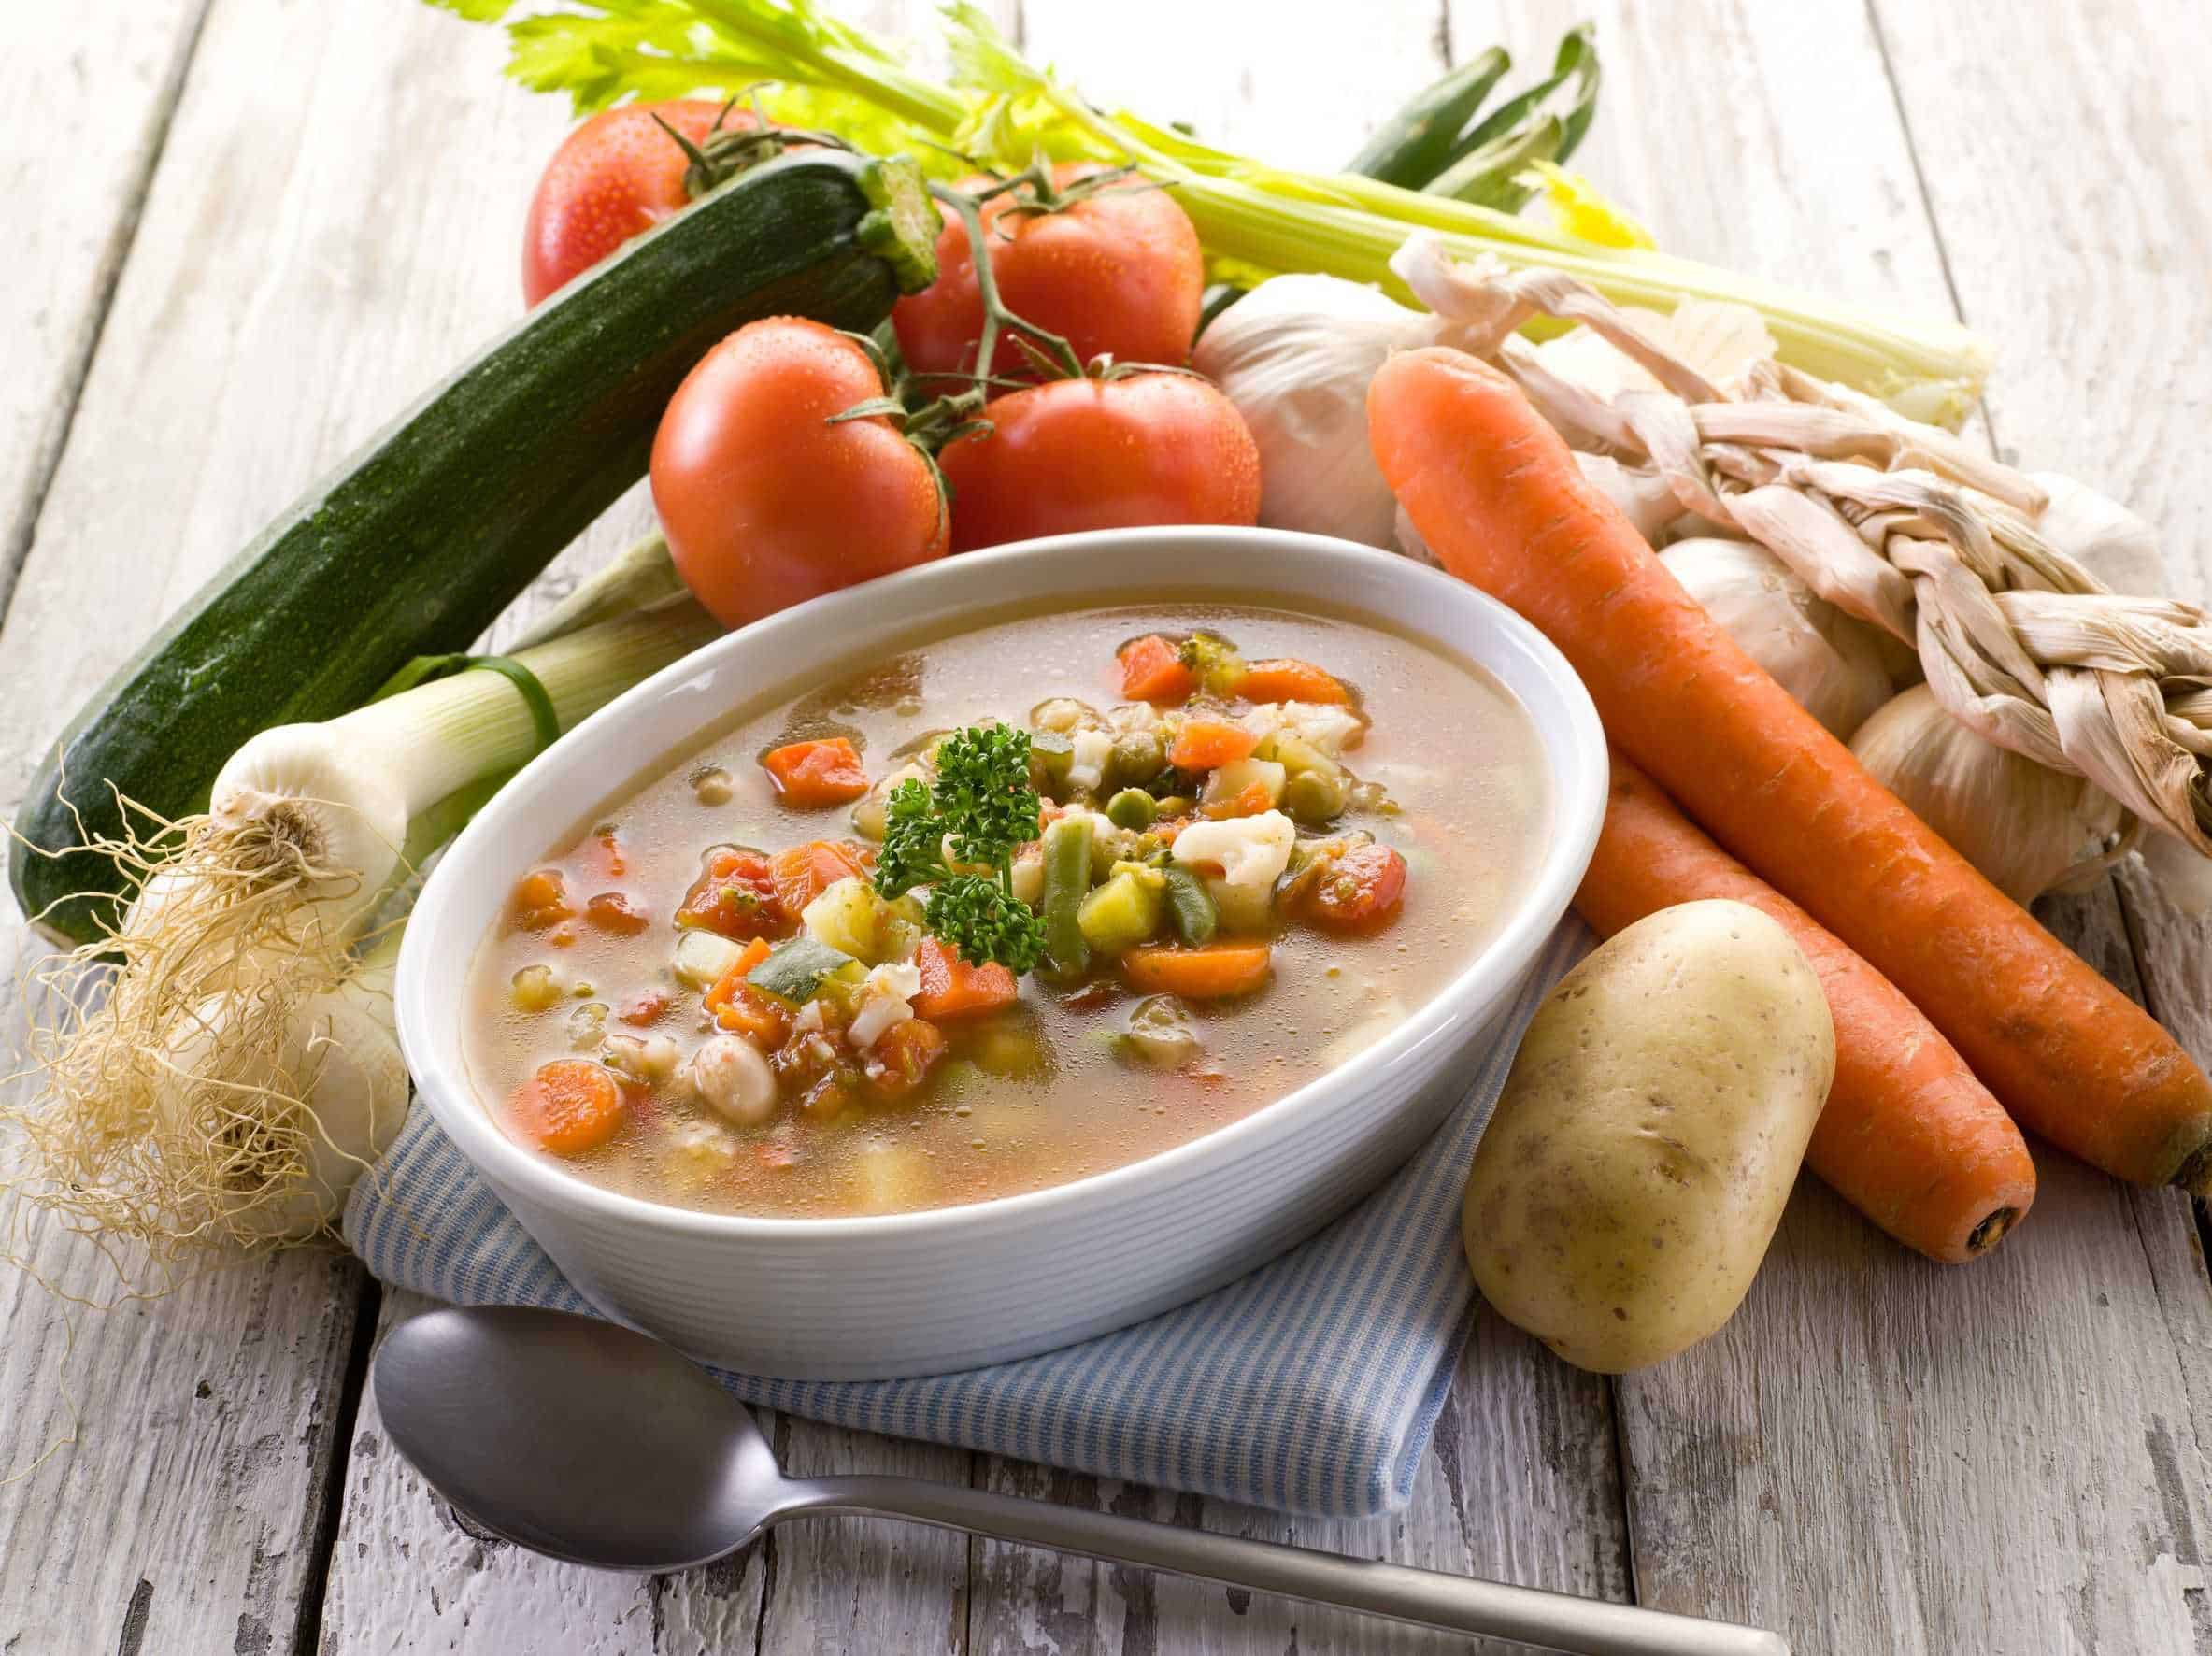 Vegetable Soup - Canning homemade soups can help you save money, gain control over what's in your food, and save you time when you need a quick meal. Make your own canned soup with one of these delicious twelve recipes today.